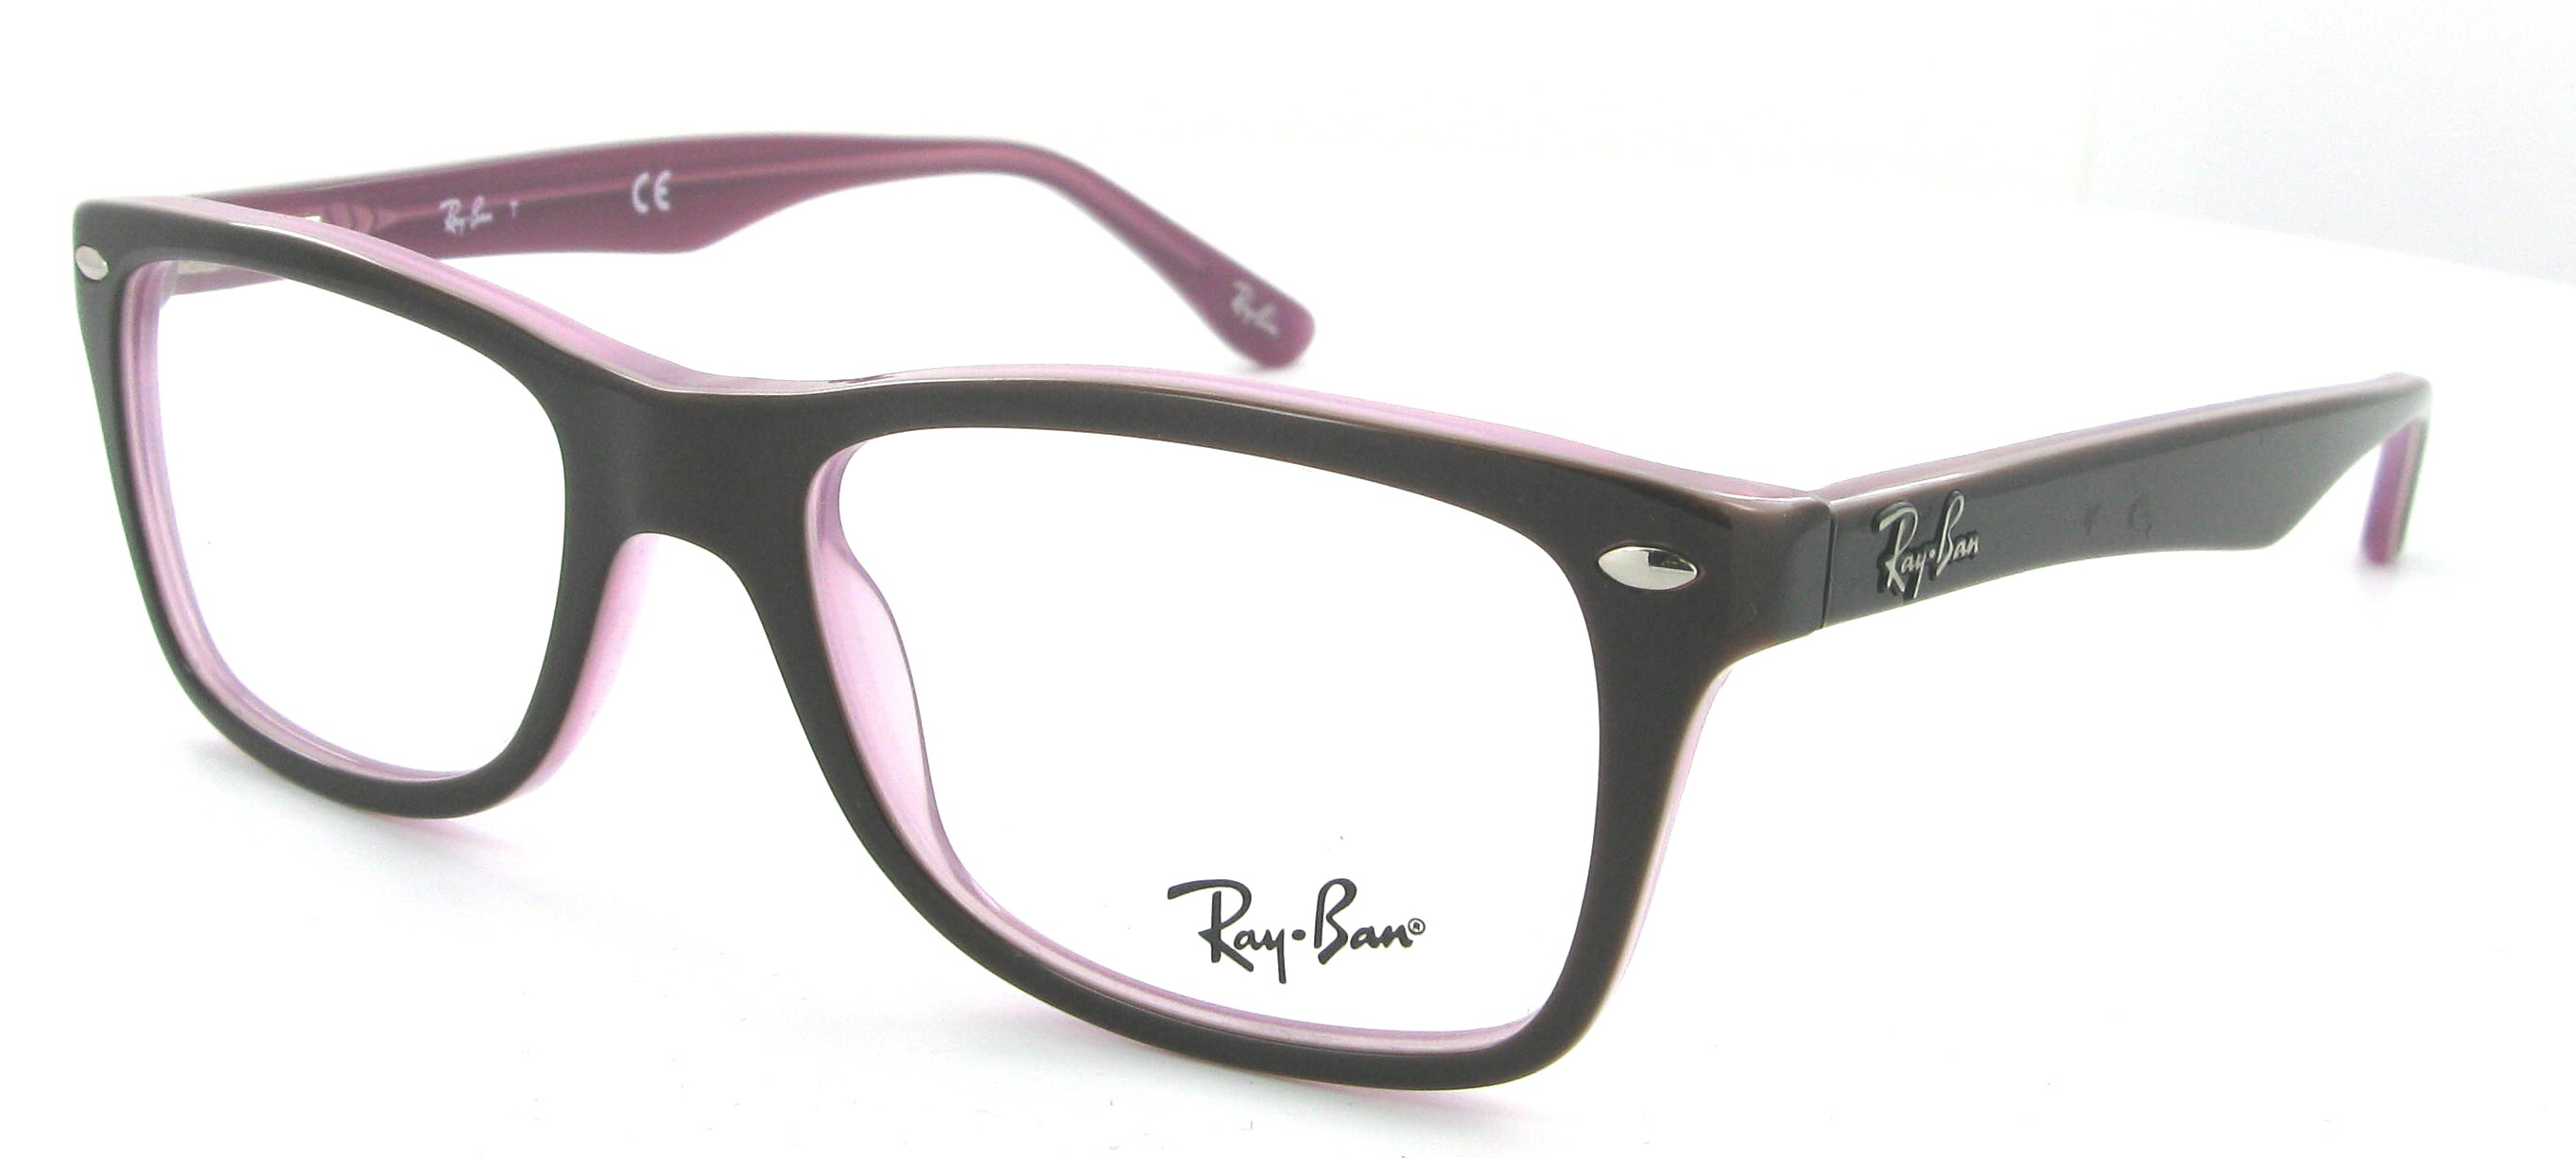 ray ban pas cher optical center  imitation ray ban aviator femme